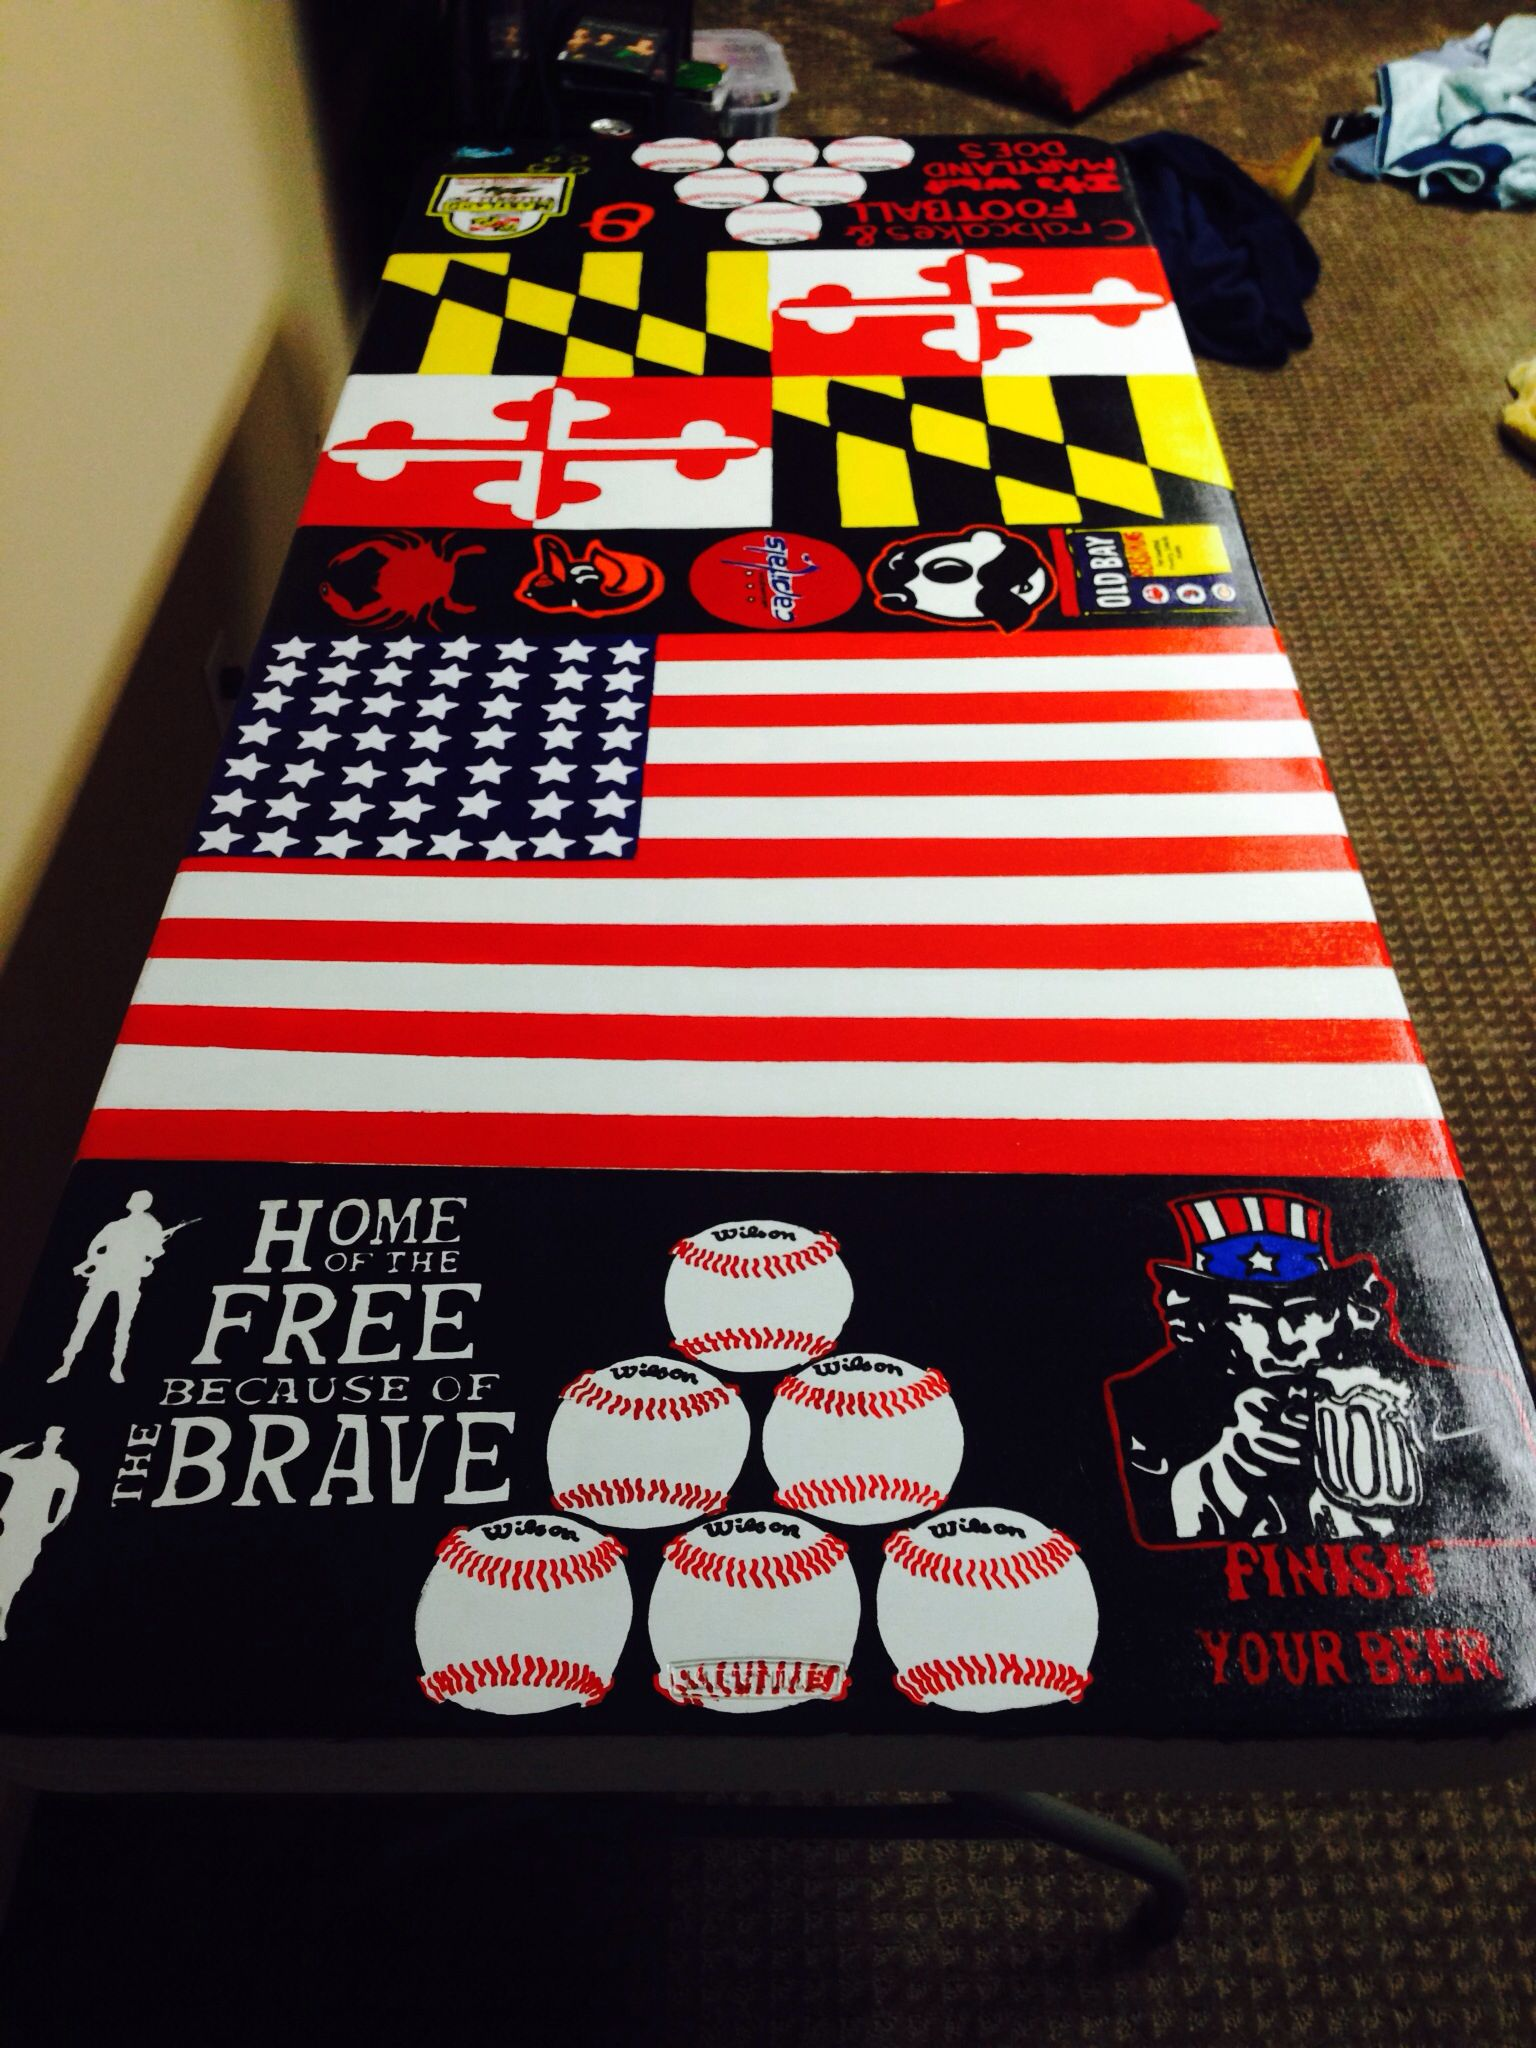 Hand Painted Beer Pong Table Completed Projects Beer Pong Tables